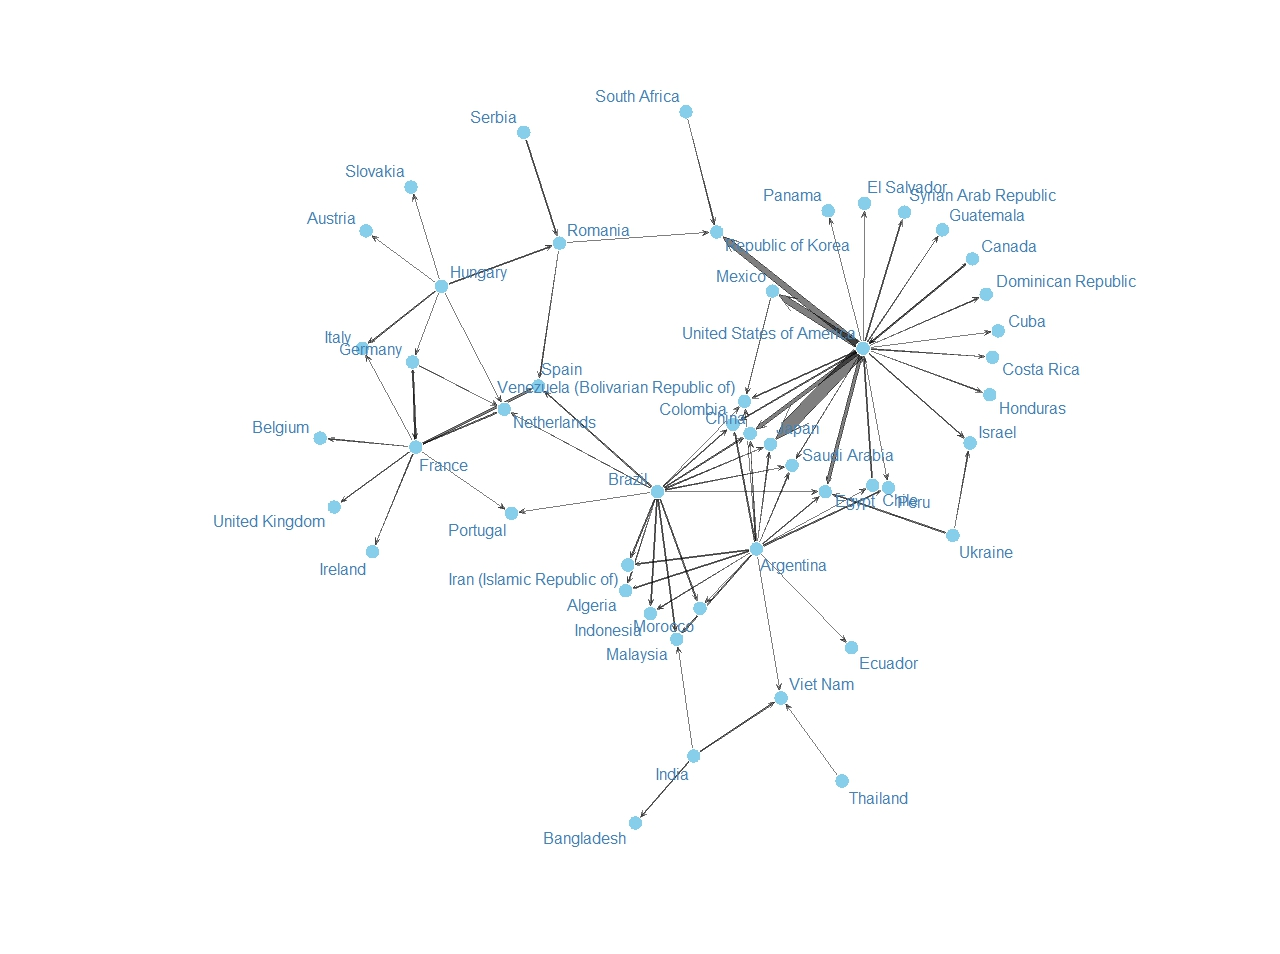 Maize trade Part I: Generate the network diagram